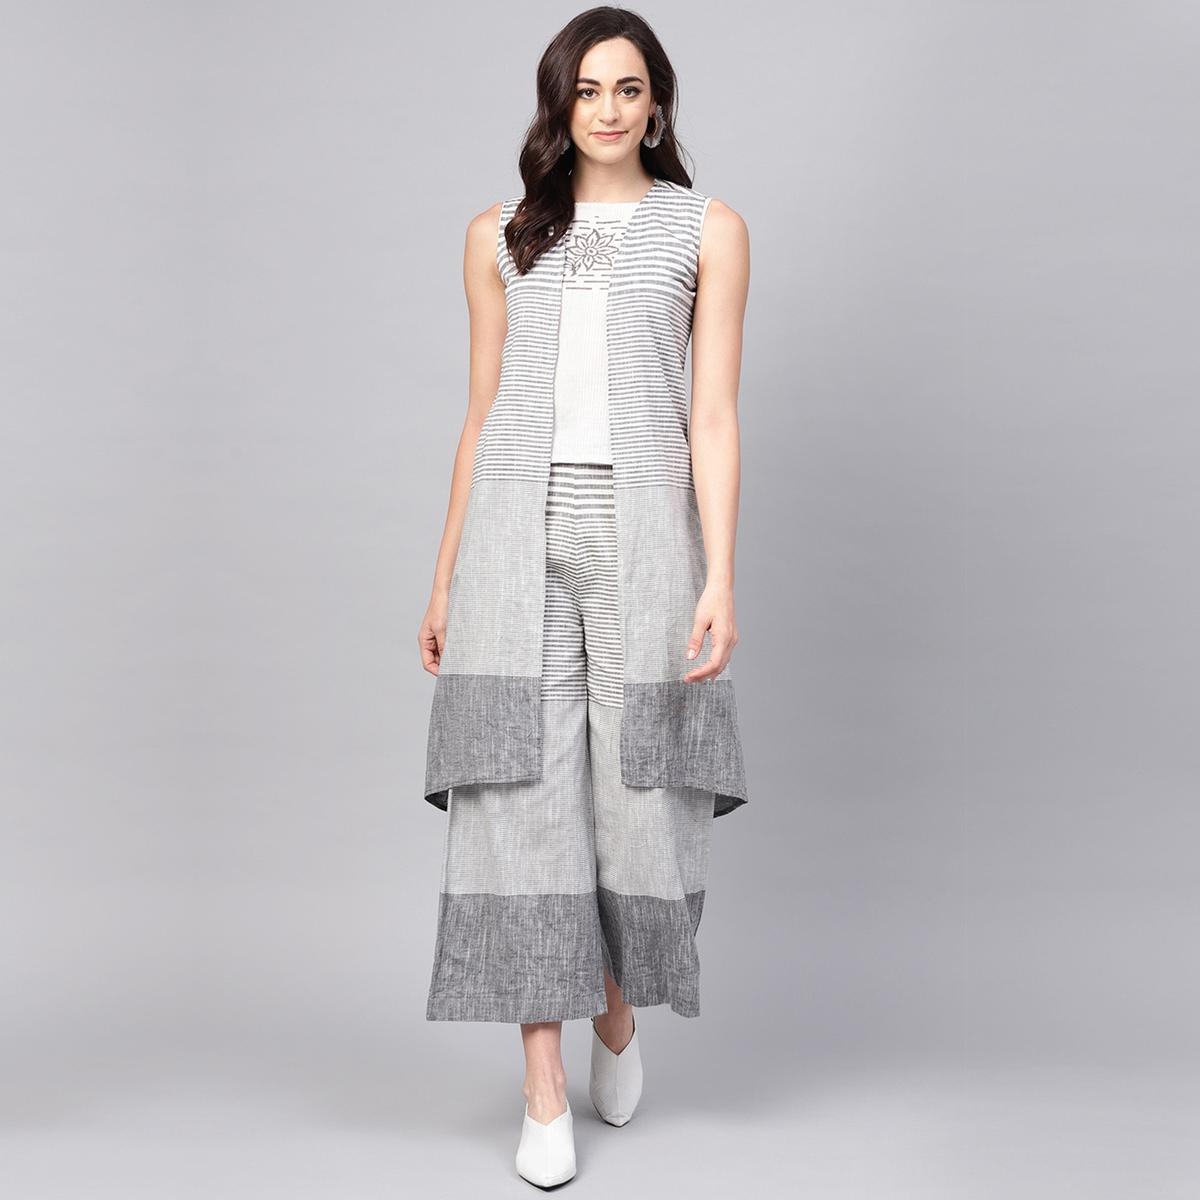 Jazzy White-Grey Colored Casual Wear Stripe Printed Cotton Top-Palazzo Set With Jacket